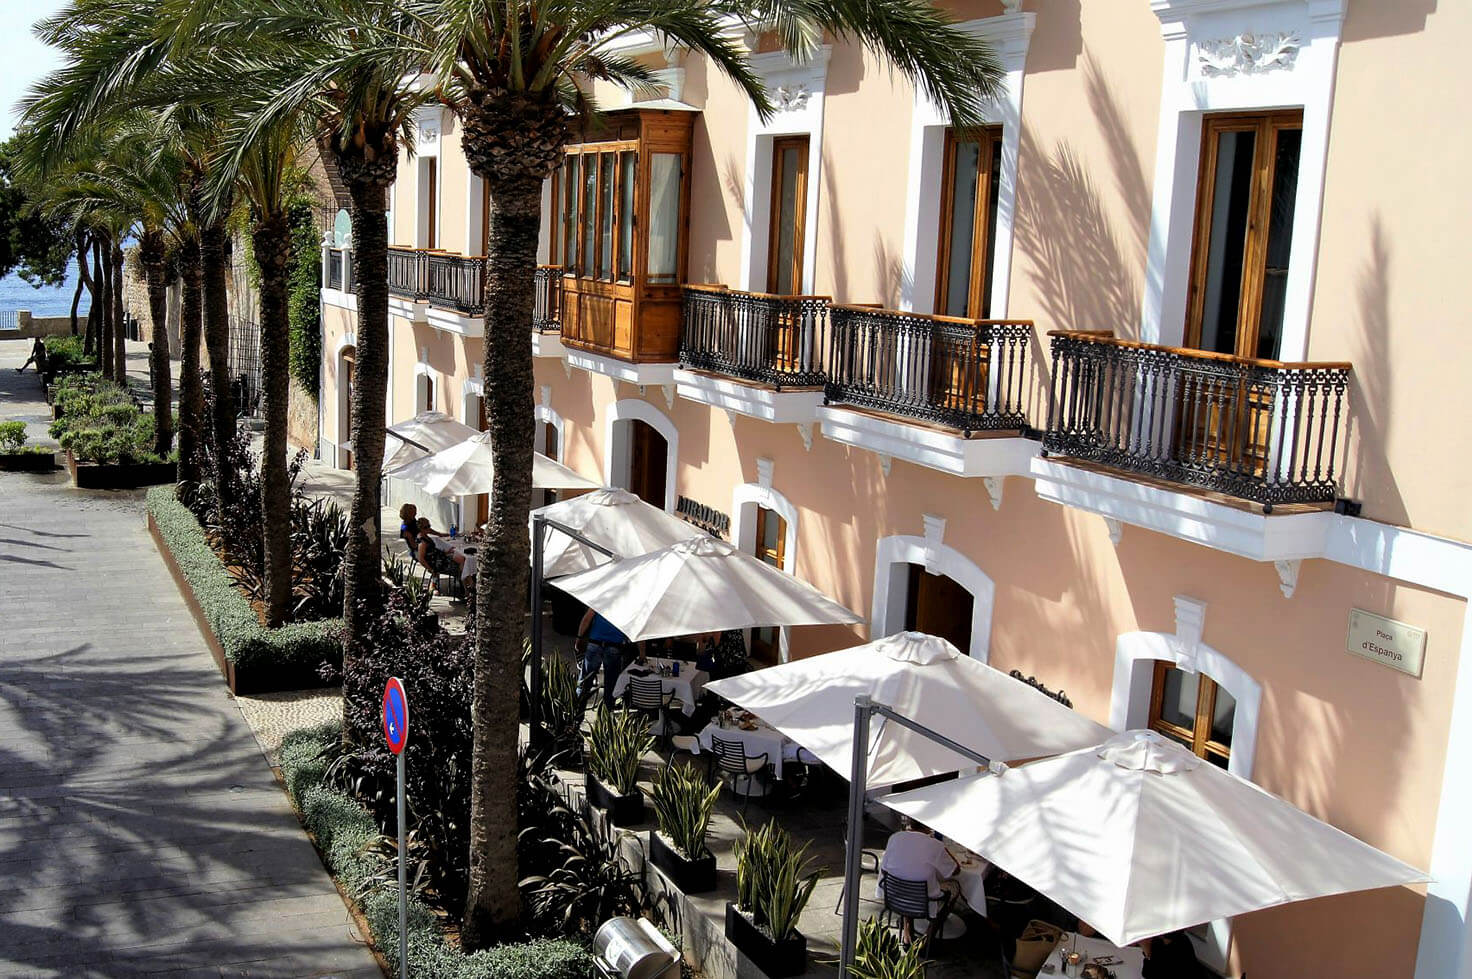 Hotels in Ibiza Old Town